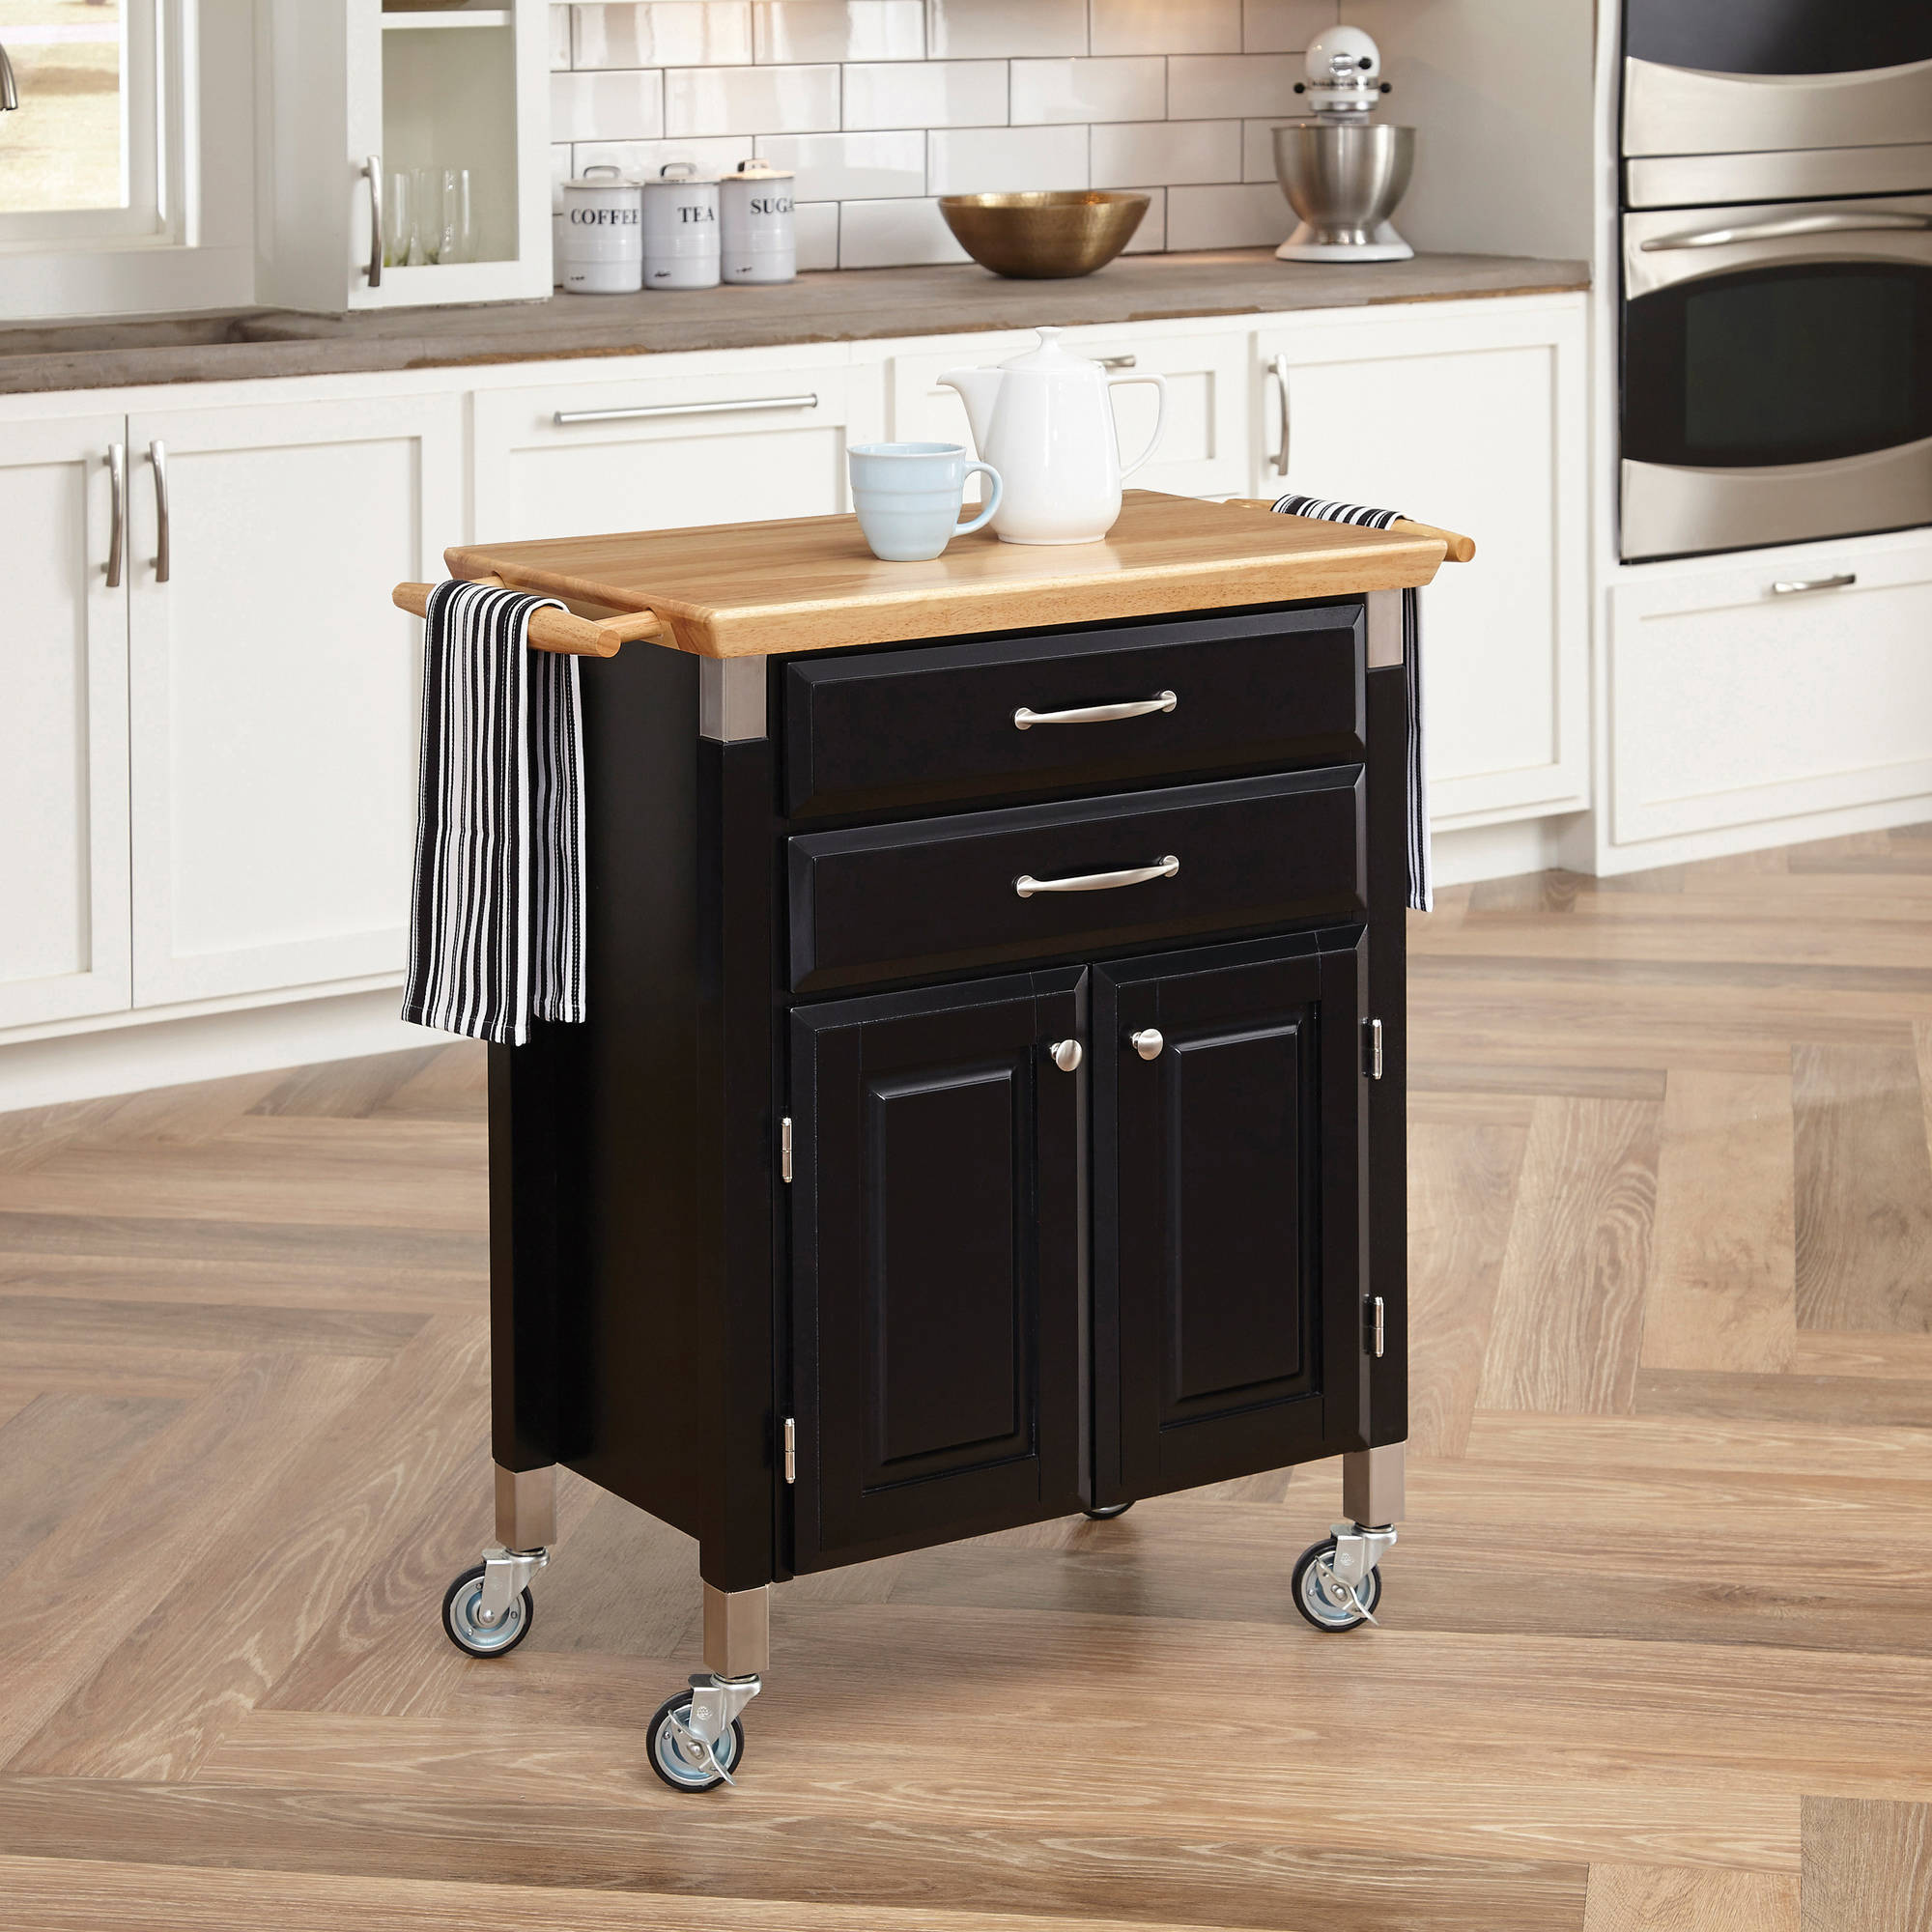 Dolly Madison Prep and Serve Kitchen Cart, Black